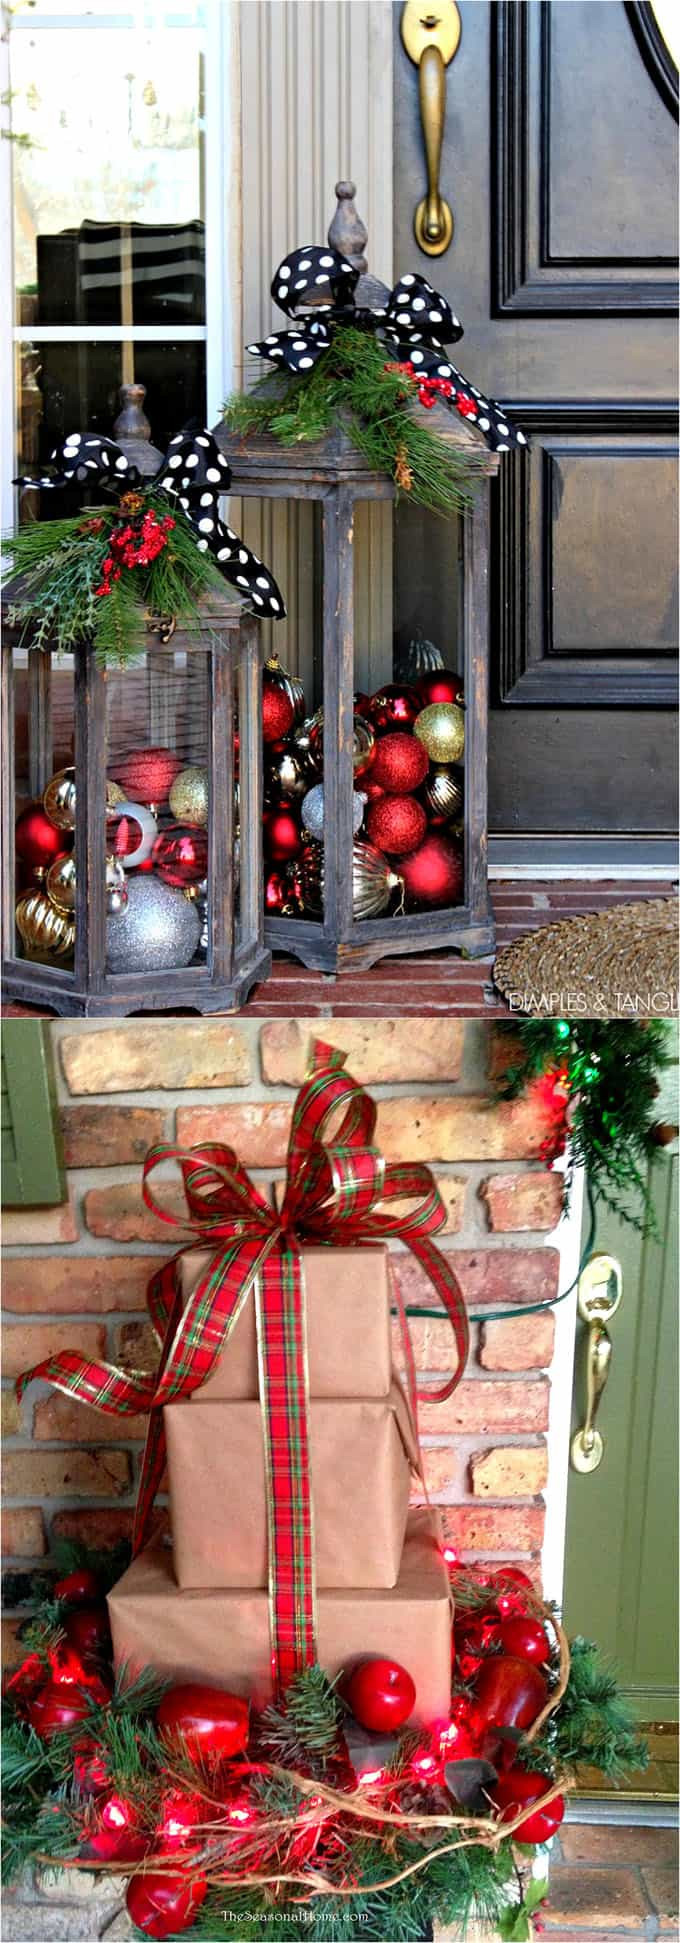 Best ideas about DIY Christmas Decorations Outdoors . Save or Pin Gorgeous Outdoor Christmas Decorations 32 Best Ideas Now.